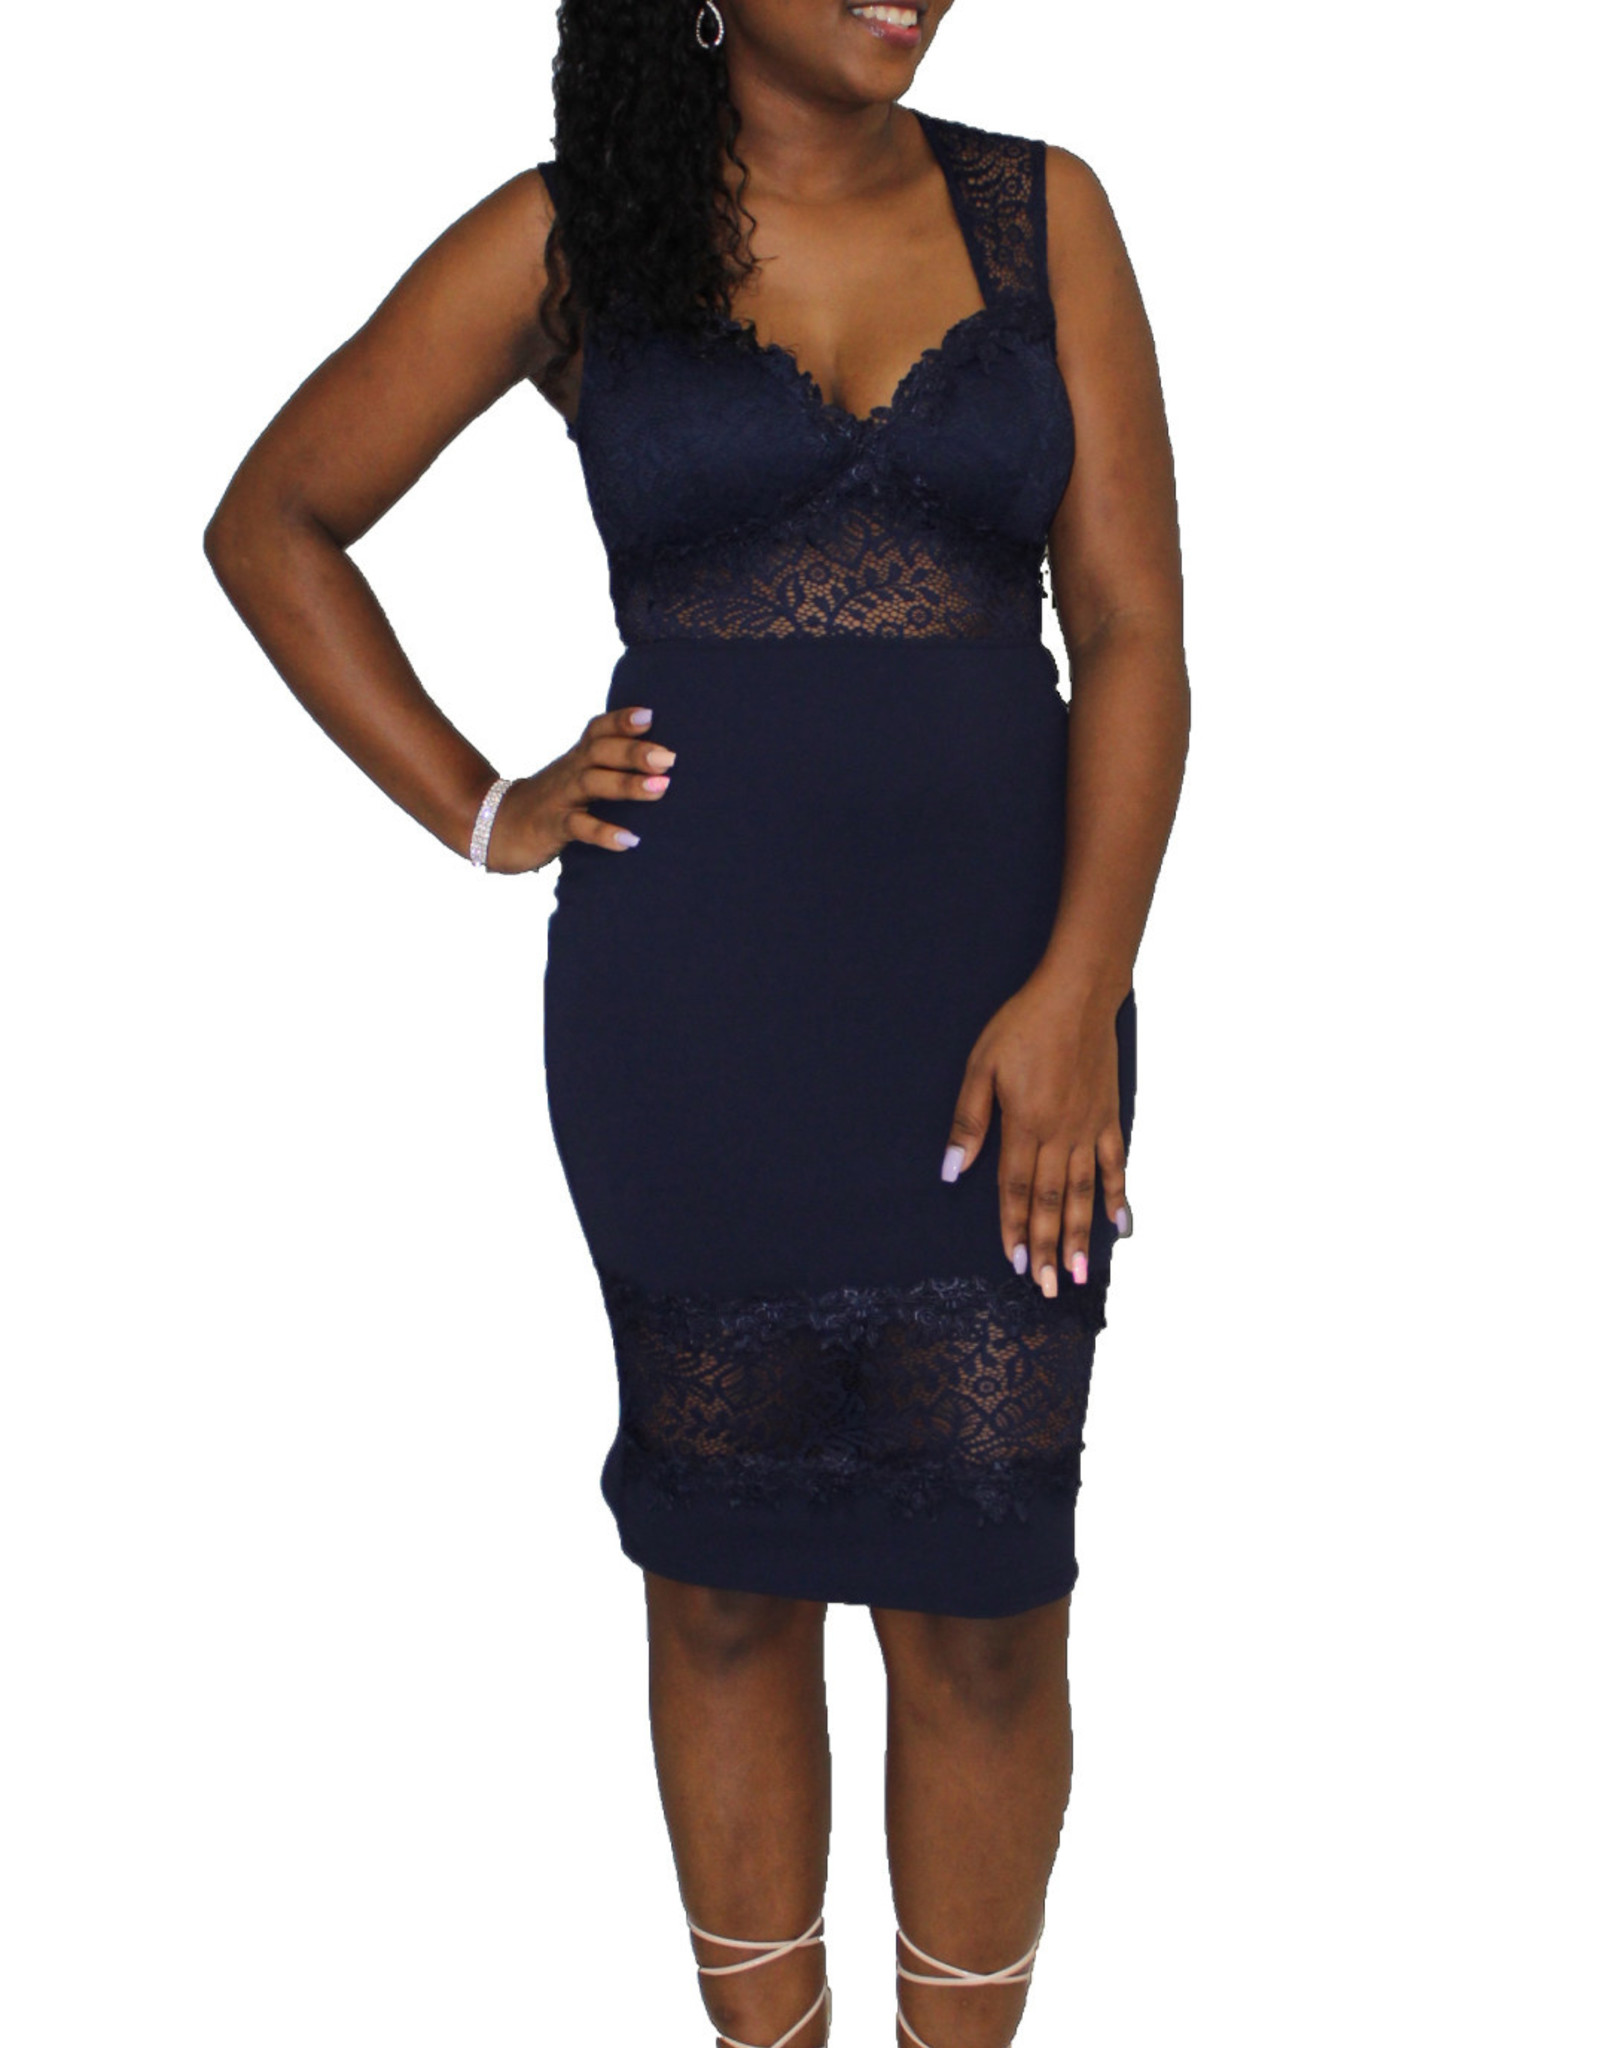 Boogie Nights Lace Dress